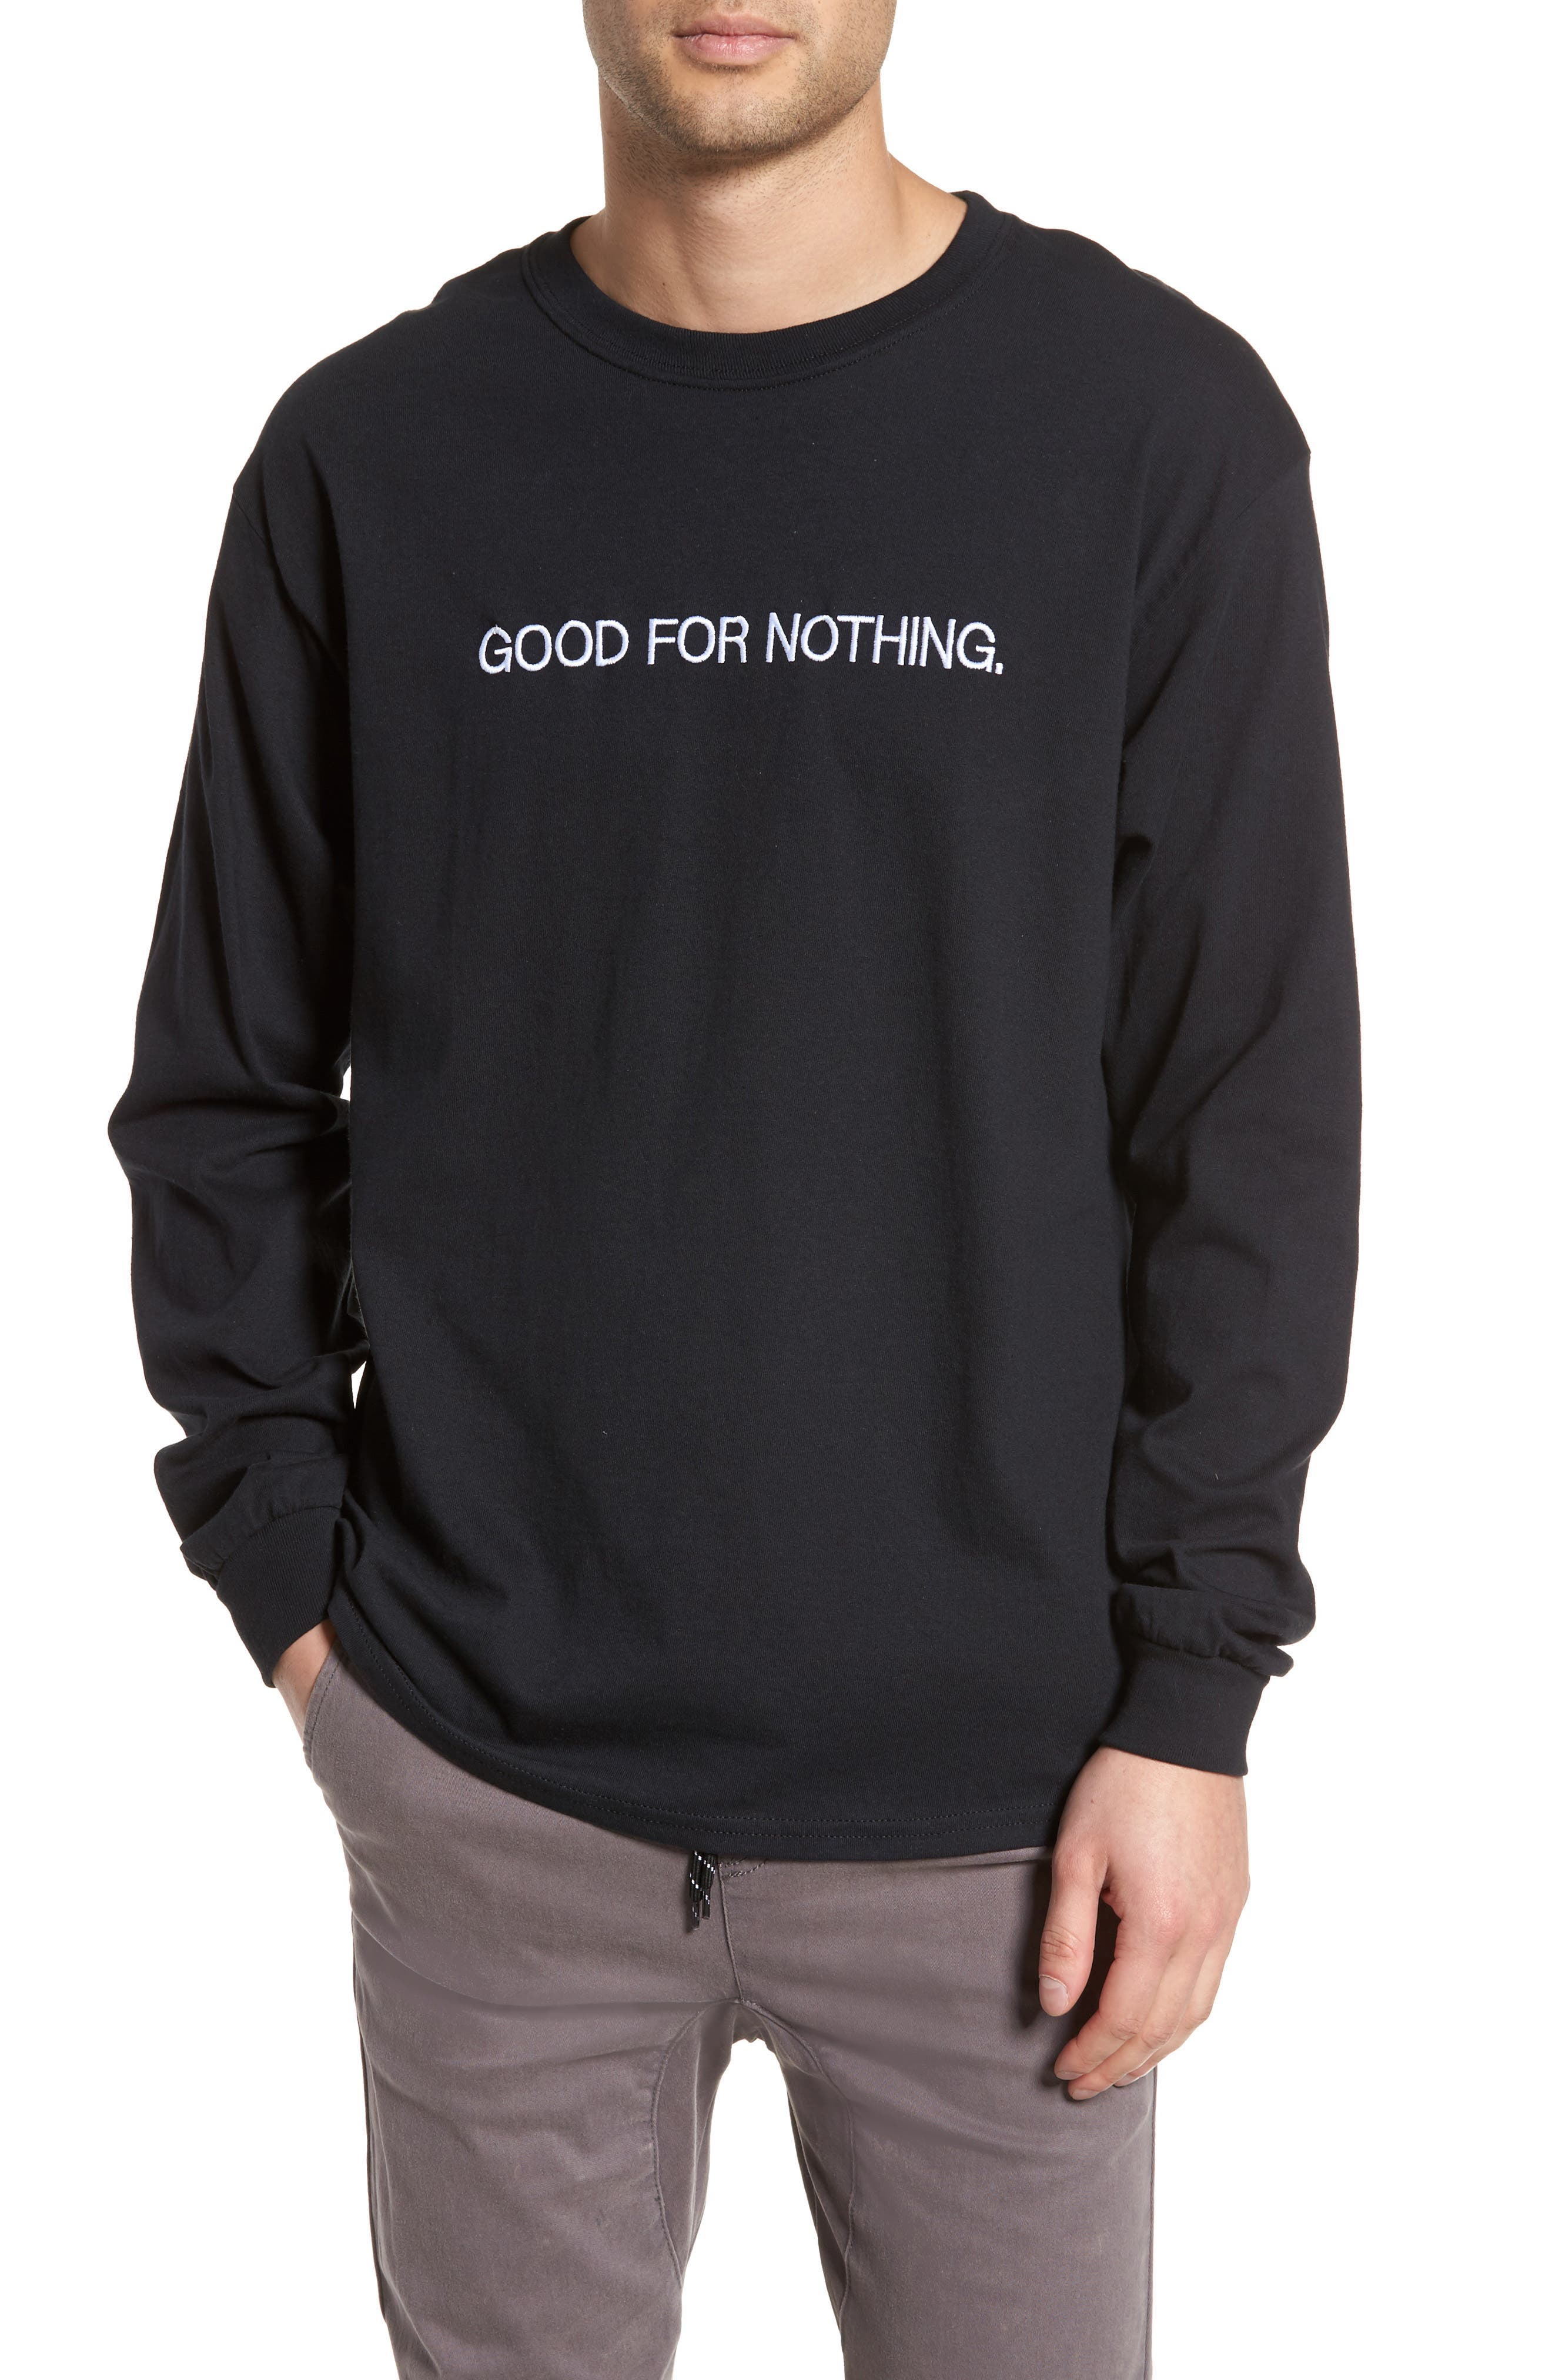 Good for Nothing Embroidered T-Shirt,                             Main thumbnail 1, color,                             Black Good For